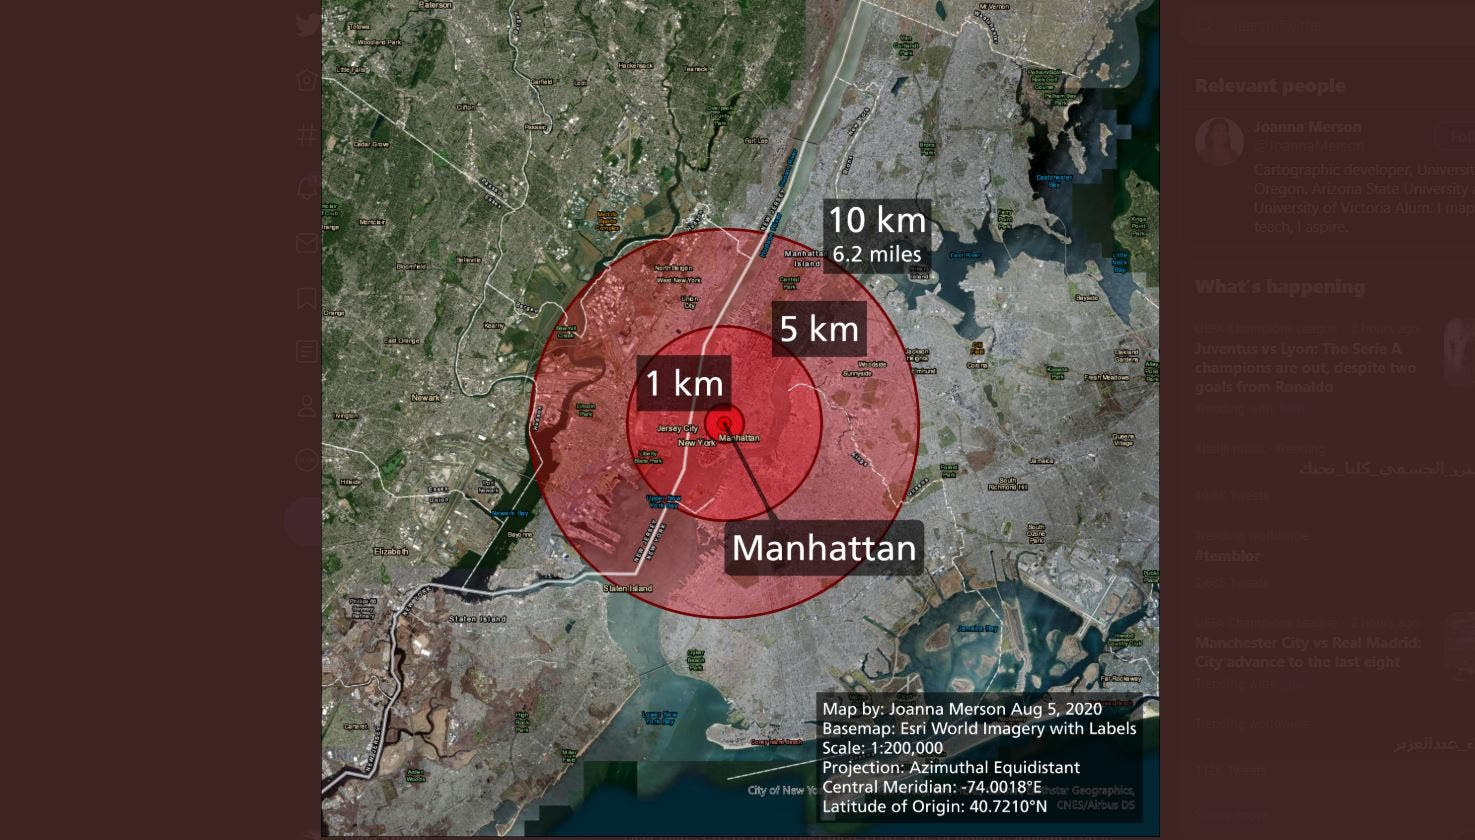 Map showing the damage radius if Beirut's explosion happened in New York. (Twitter/ JoannaMerson)